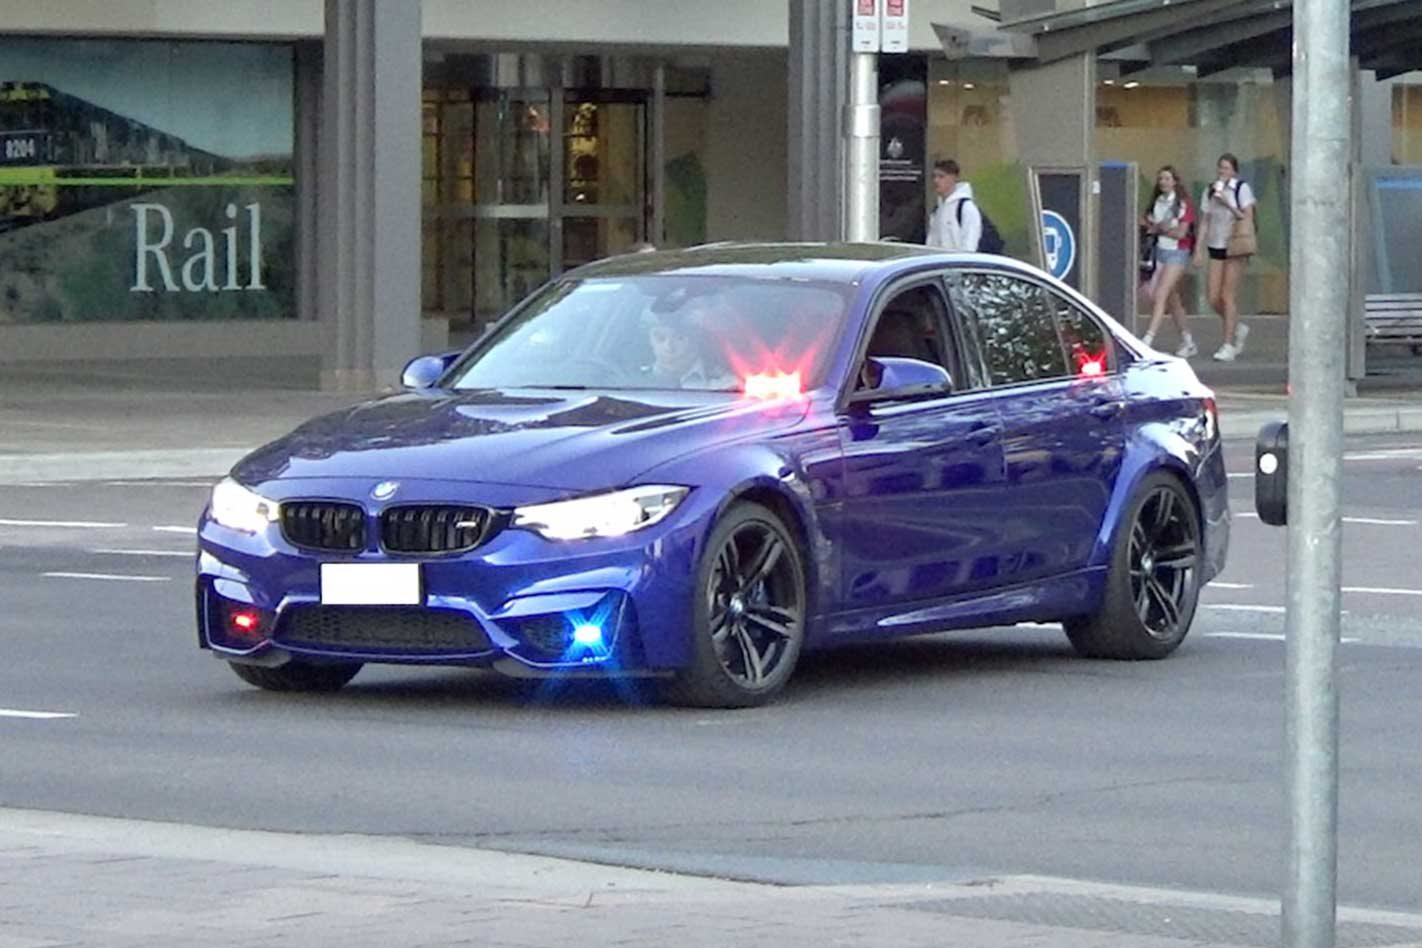 Spotted! Unmarked BMW M3 AFP police car